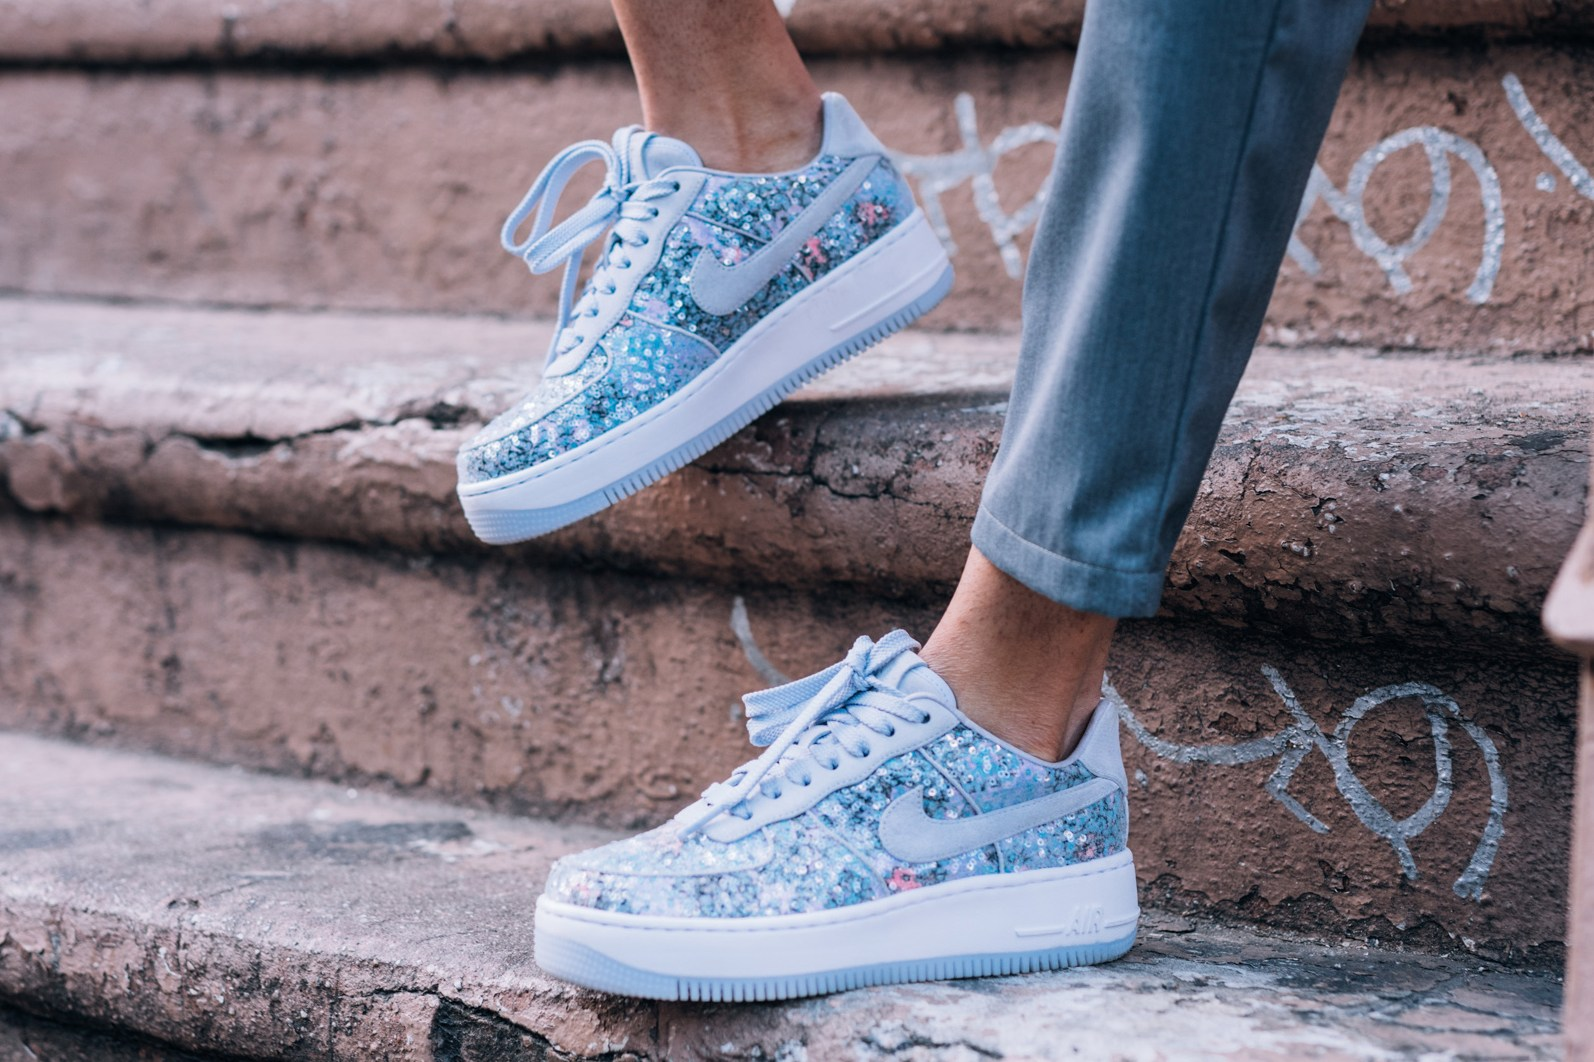 La Nike Air Force Upstep Low « Glass Slipper »: une pépite !